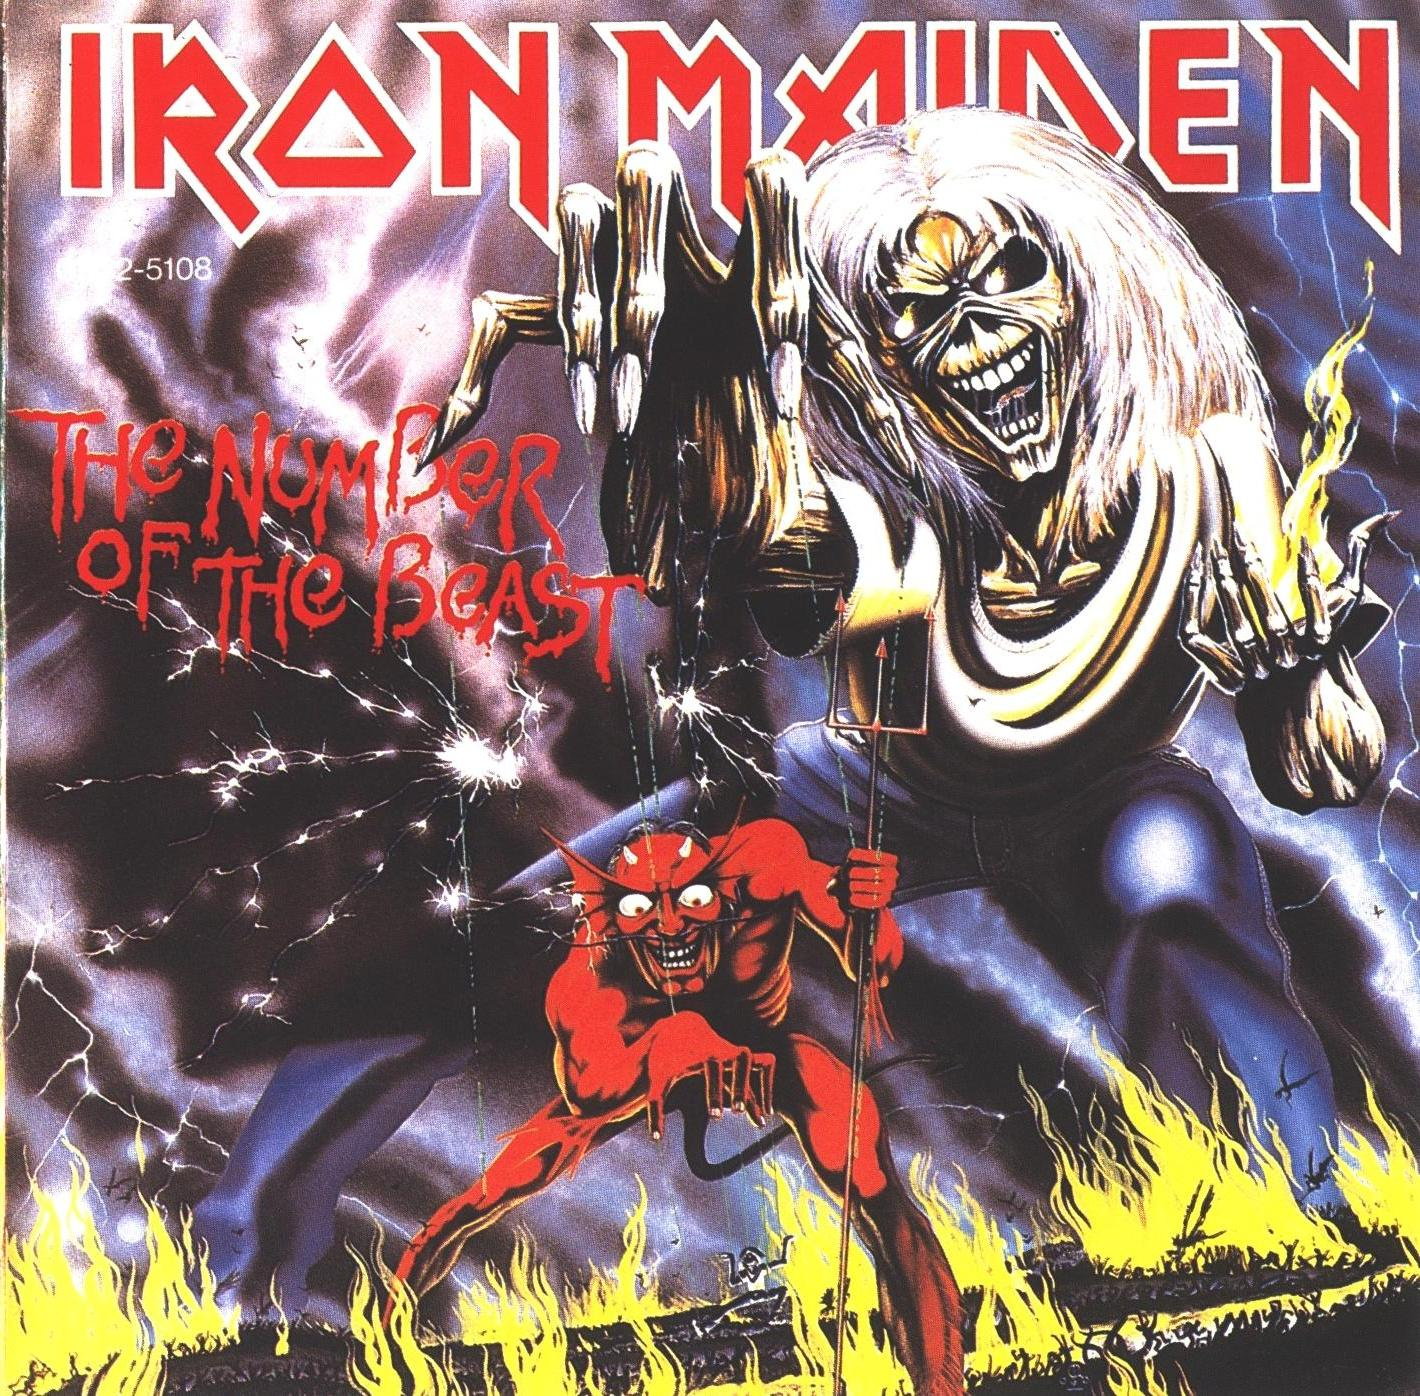 iron maiden the number of the beast 1982.JPG